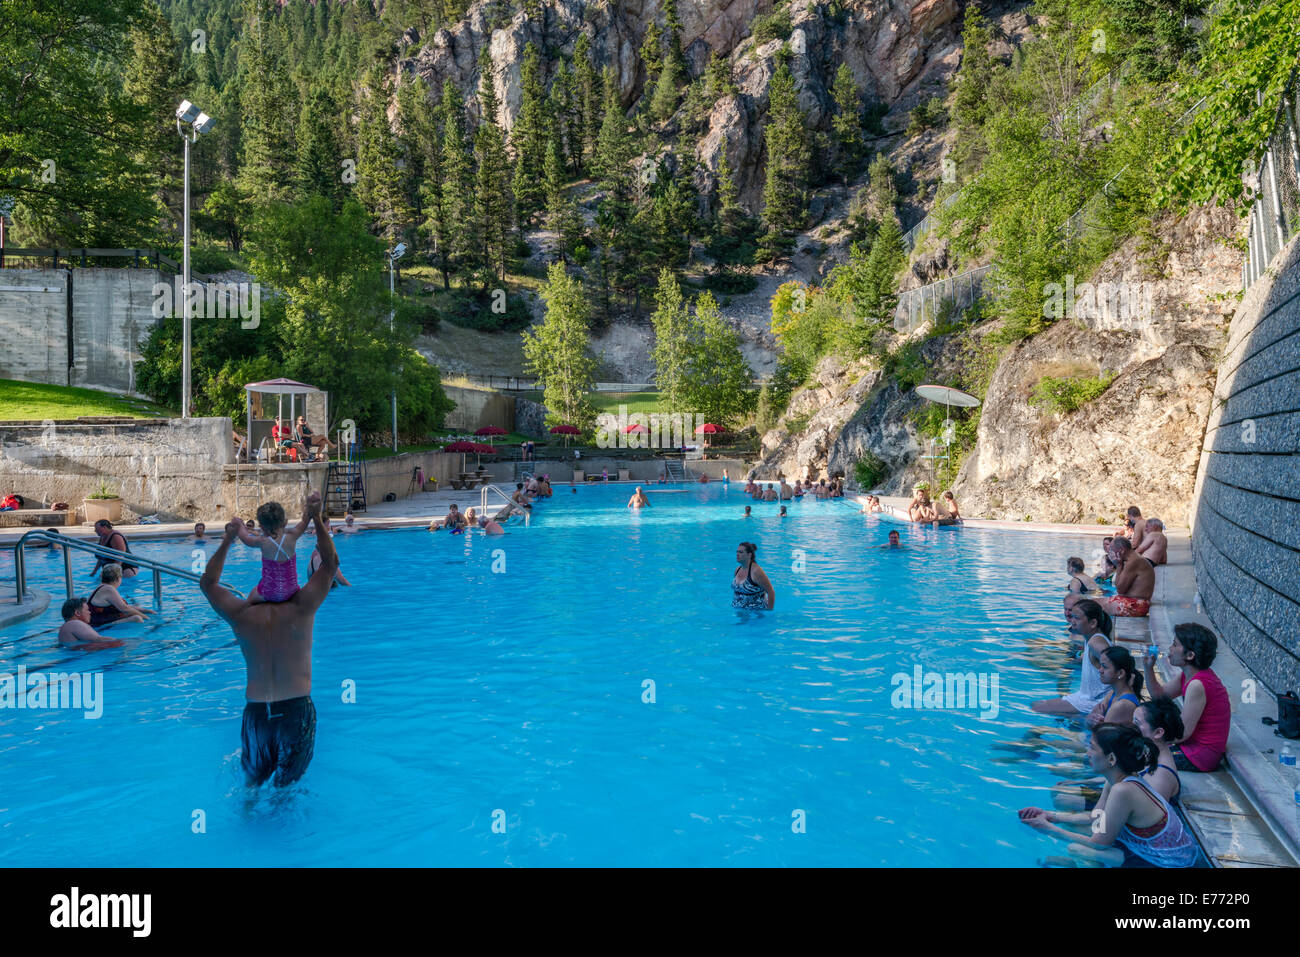 Hot water pool for soaking outdoors at radium hot springs resort hot water pool for soaking outdoors at radium hot springs resort at kootenay national park canadian rockies british columbia sciox Image collections